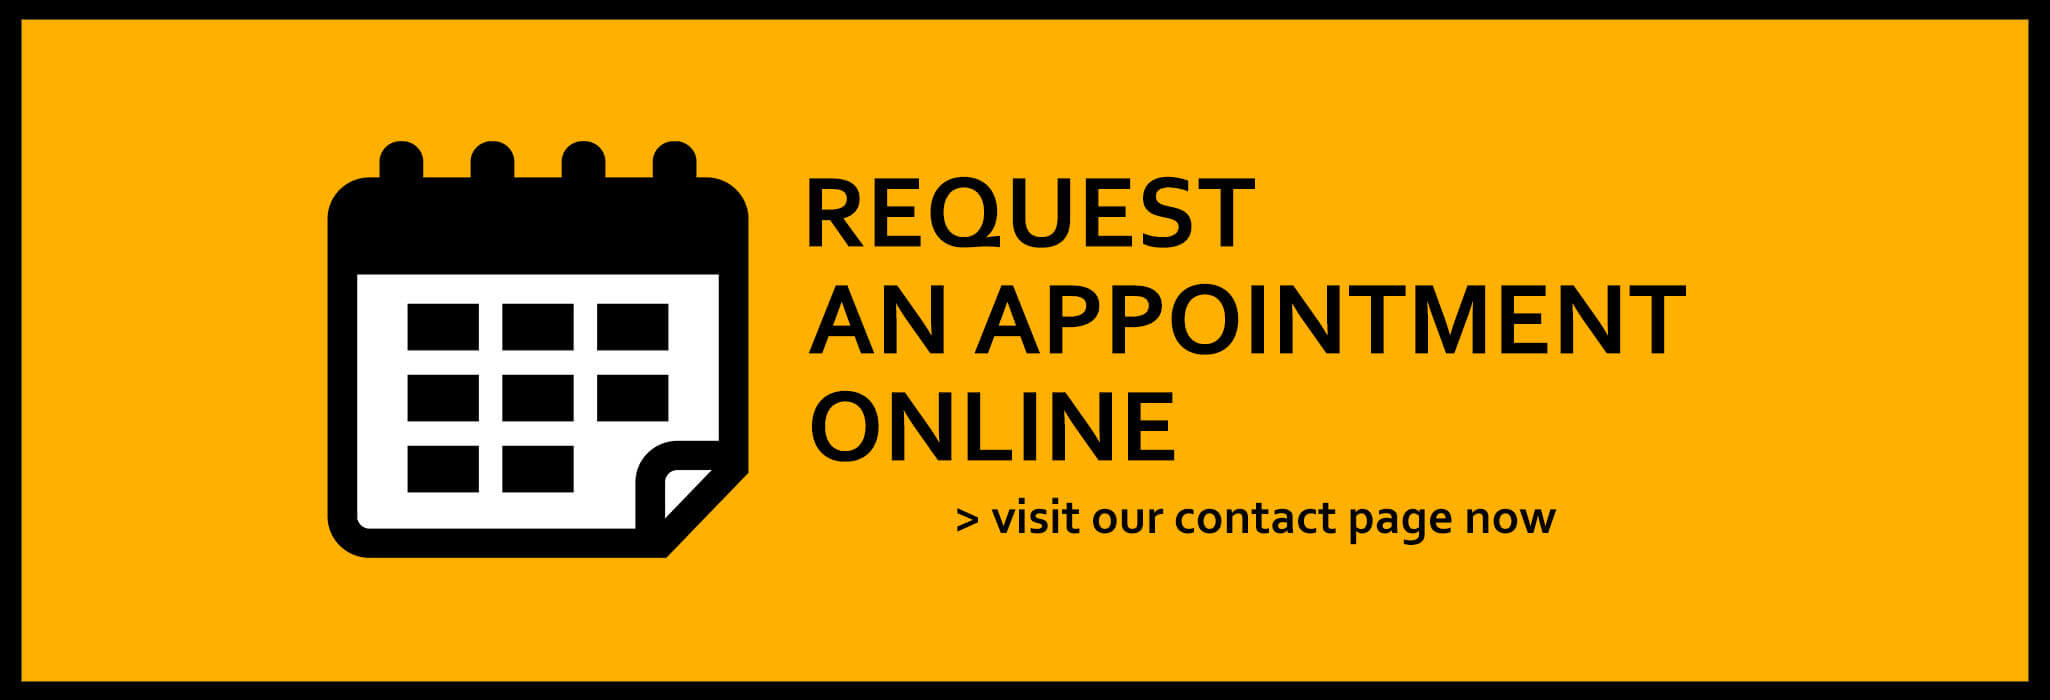 Request and Appointment Online Contact Page.jpg